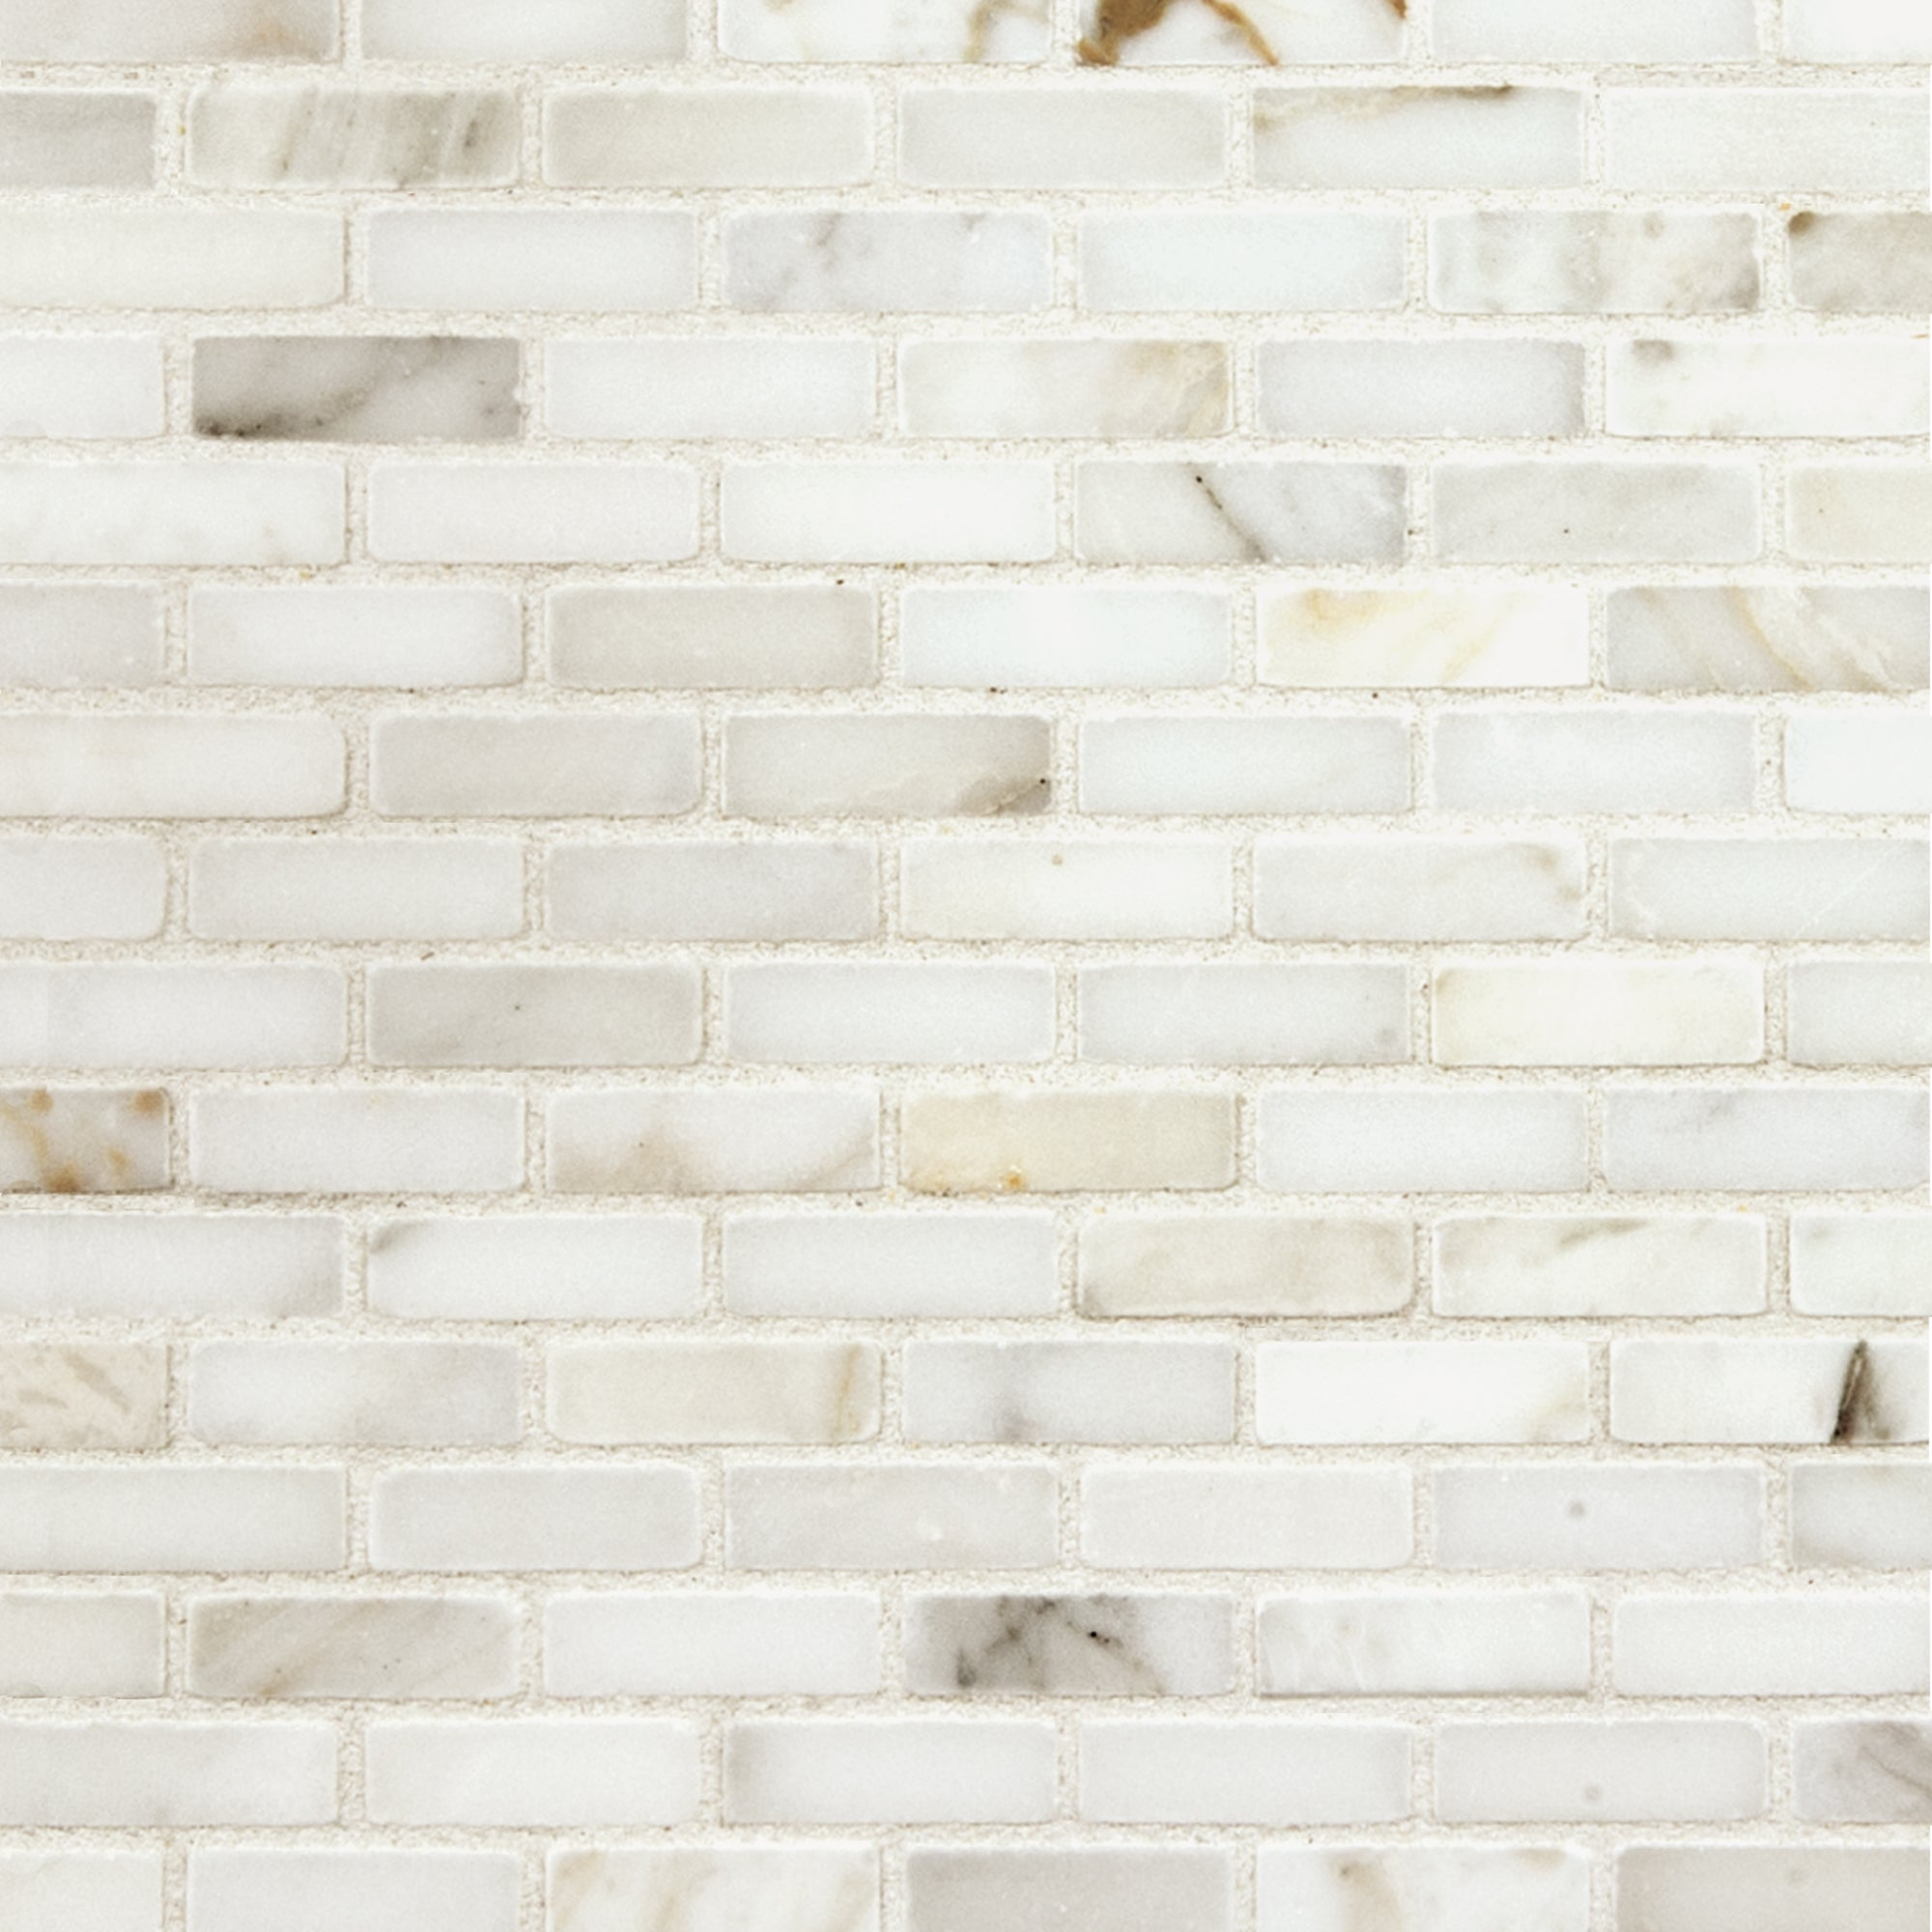 Mosaic Calacatta Gold Marble Swatch Card  Polished Samples Roman Brick product photo